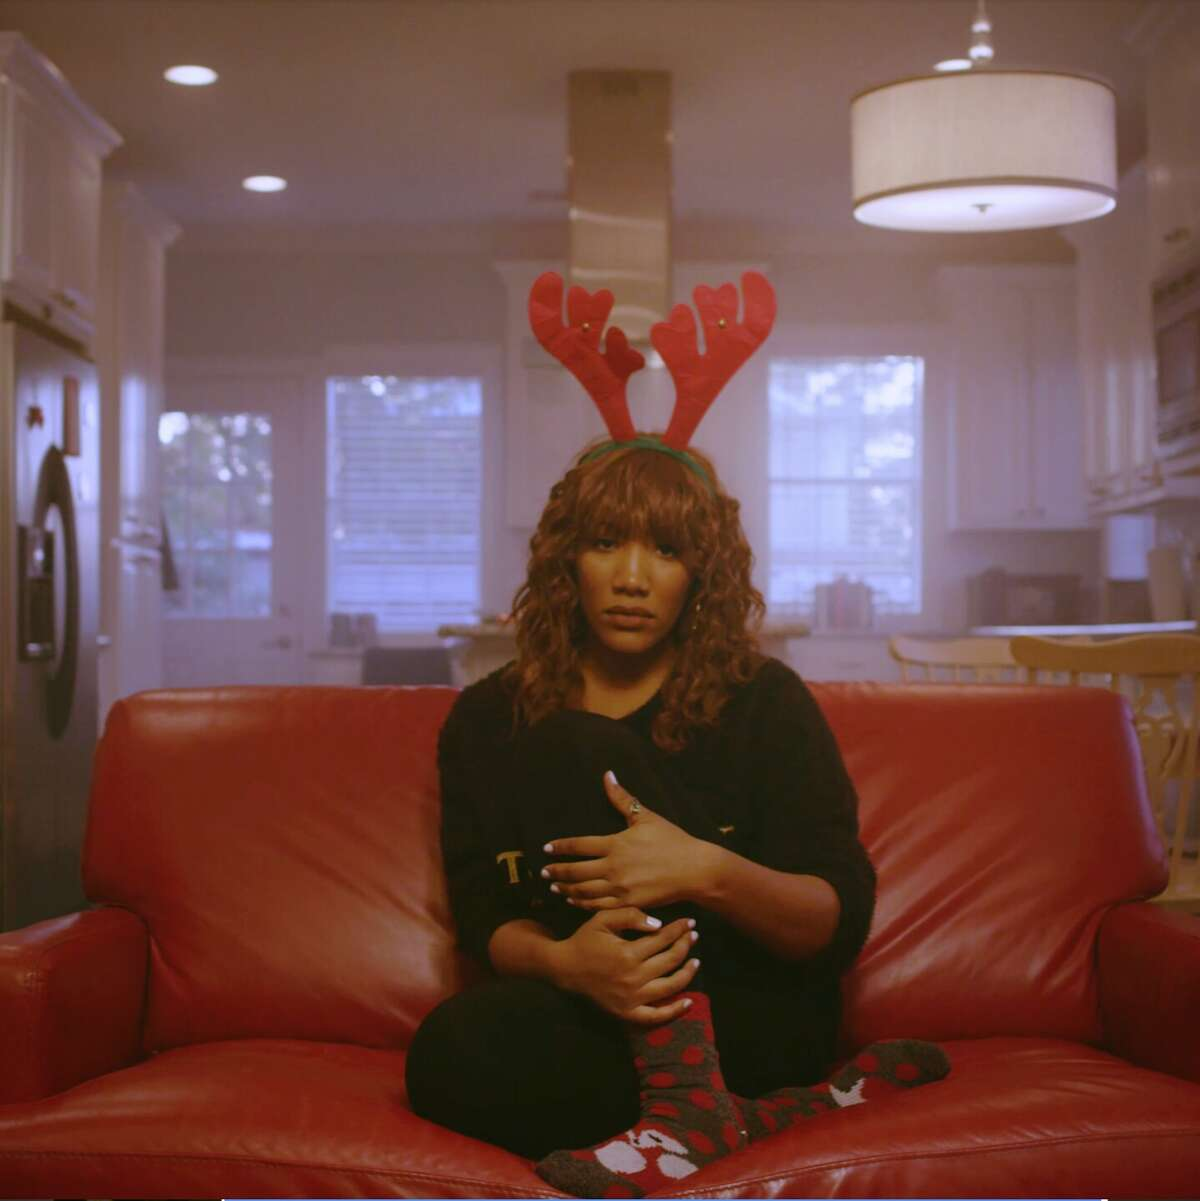 Tia Gold's 'Lonely on Christmas' sounds like a classic.